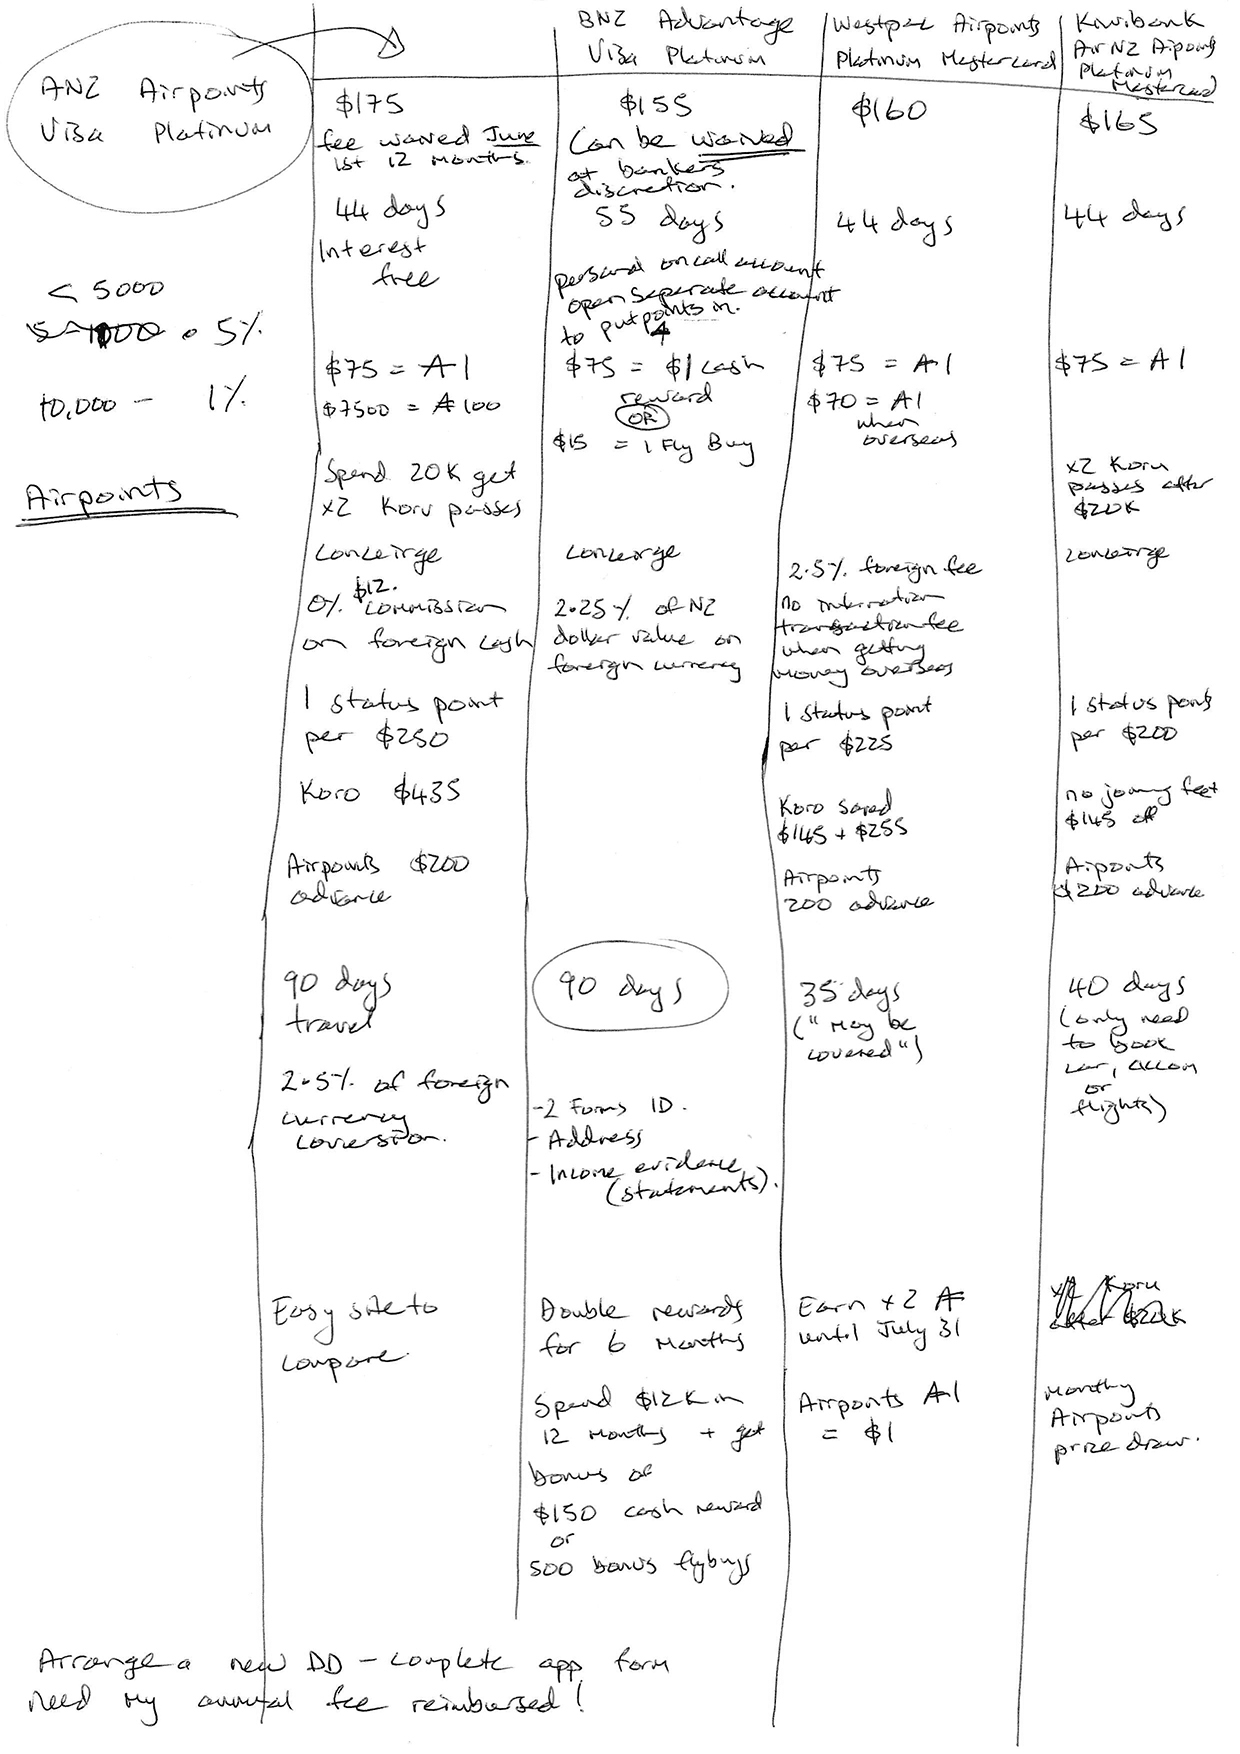 My comparison list.Click on image to enlarge.